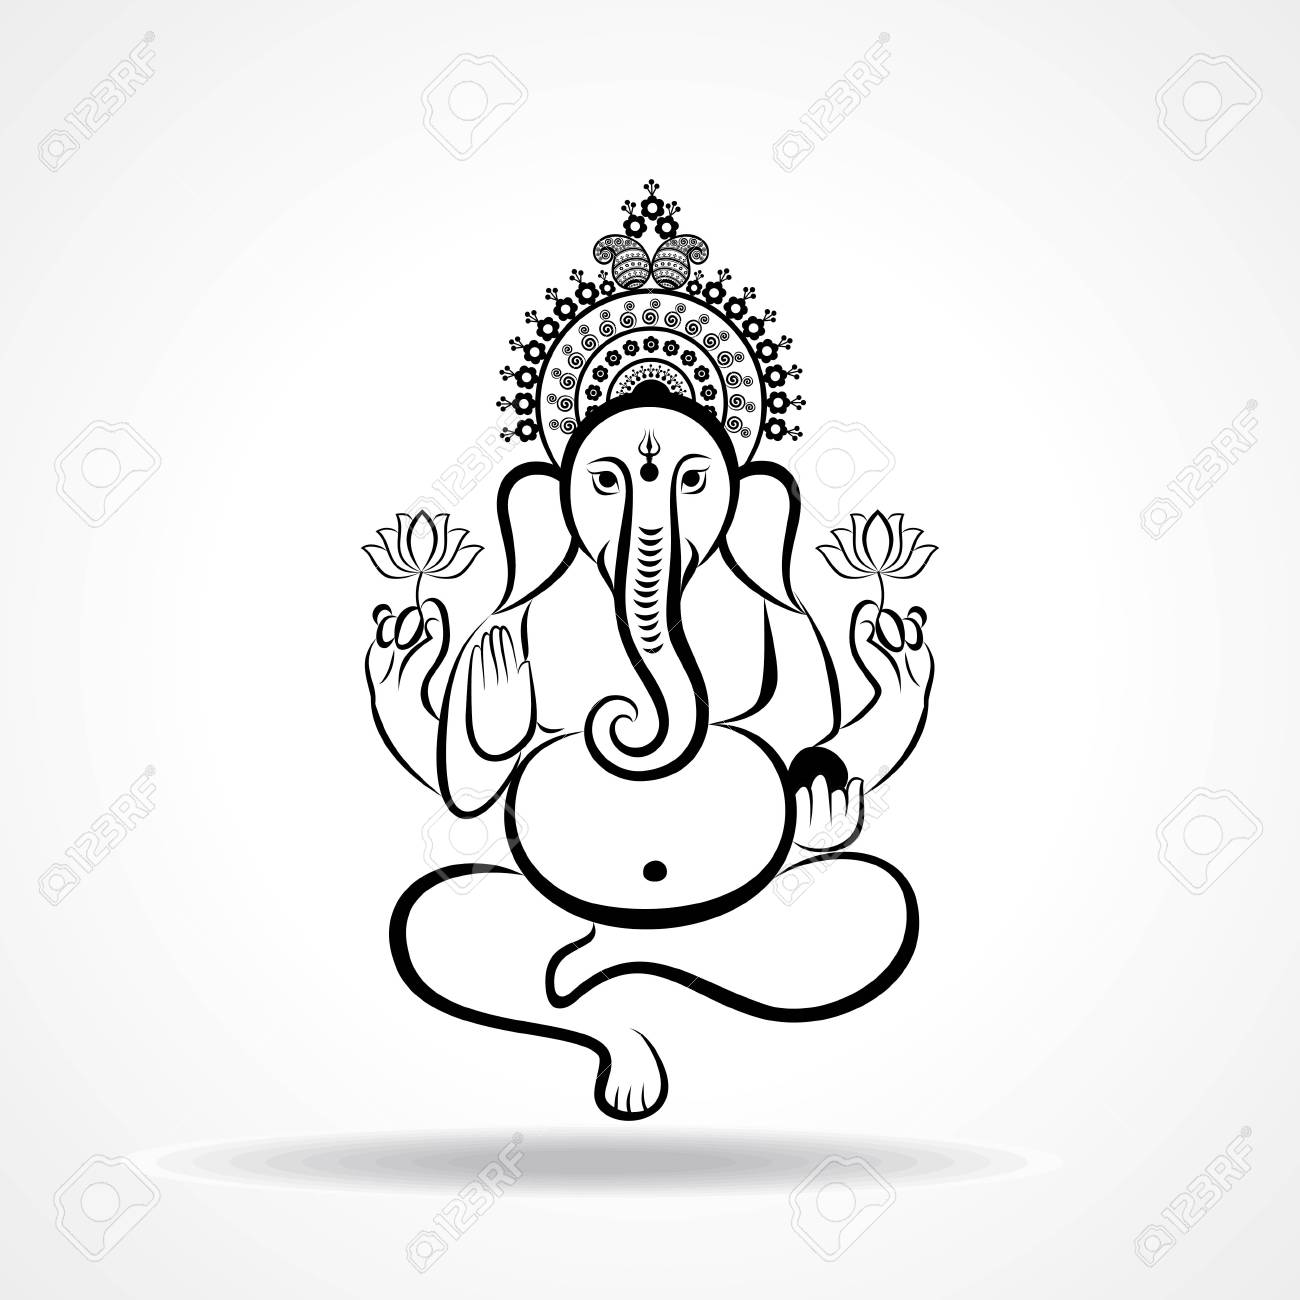 Happy Ganesh Chaturthi Festival Background Vector Royalty Free Cliparts Vectors And Stock Illustration Image 106196119